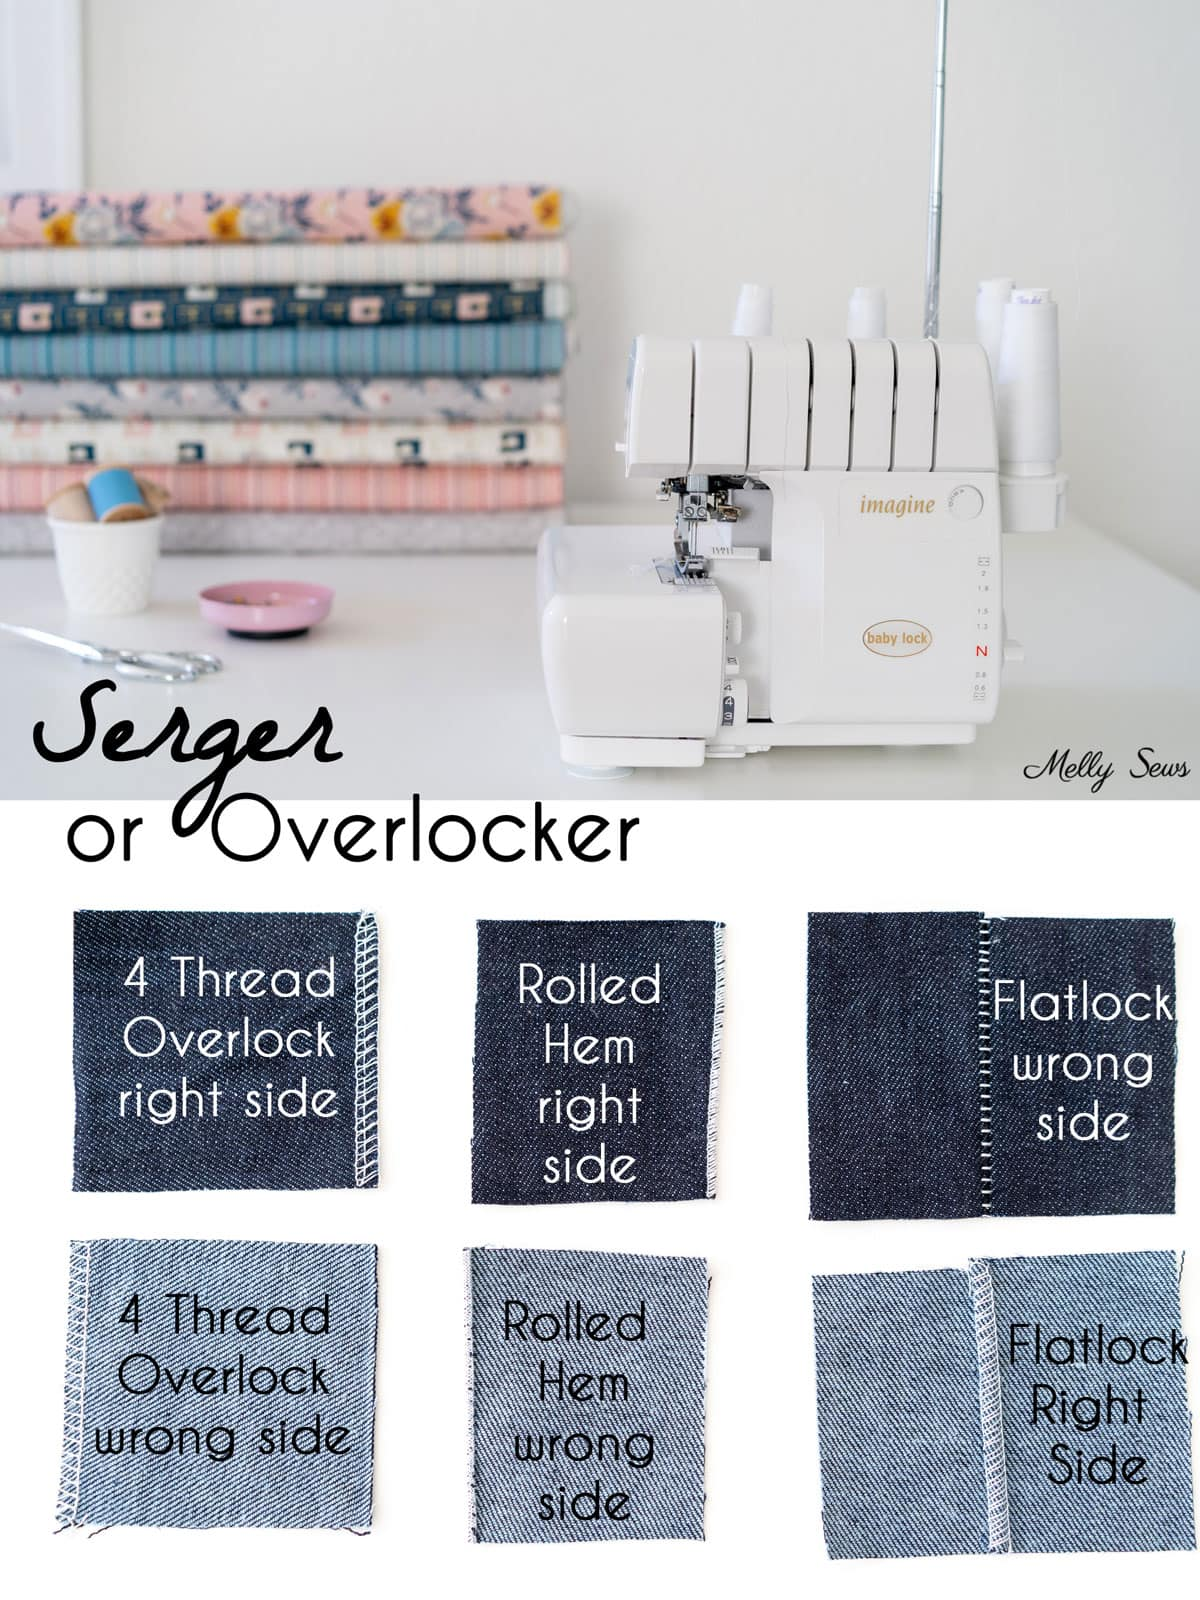 Serger or Overlocker and a sample of stitches a serger can do